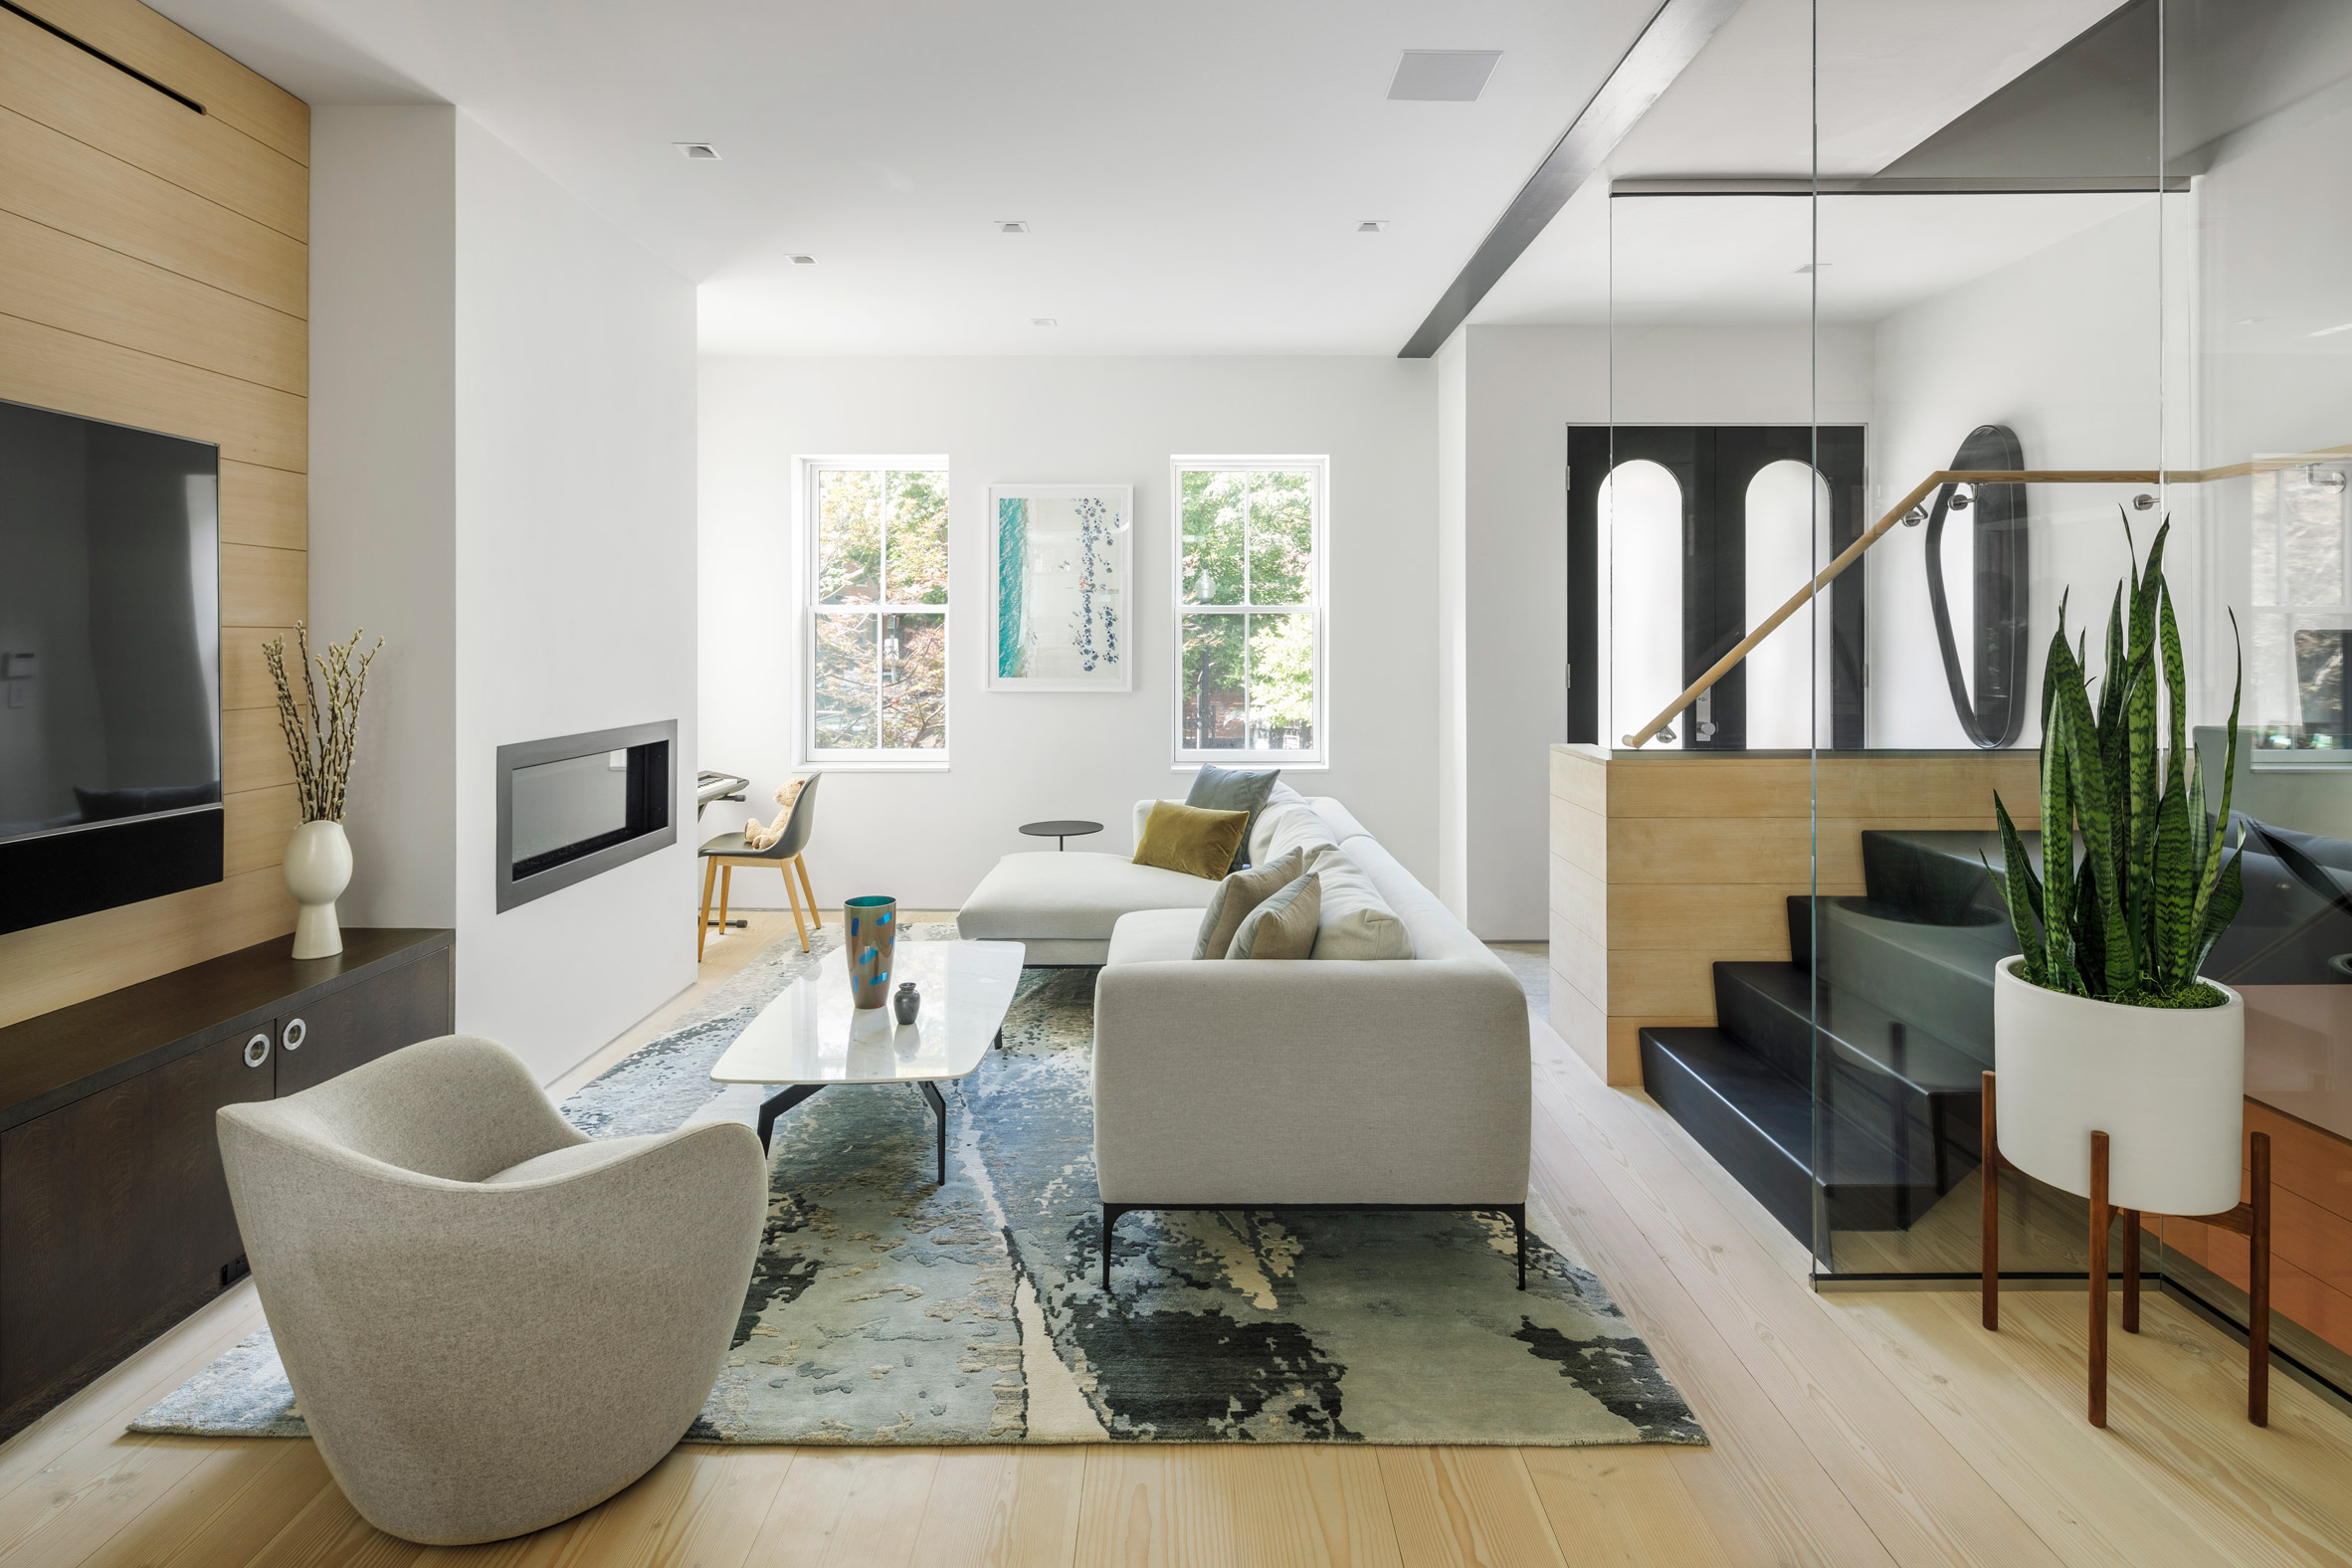 Interior view of the living space at boston house